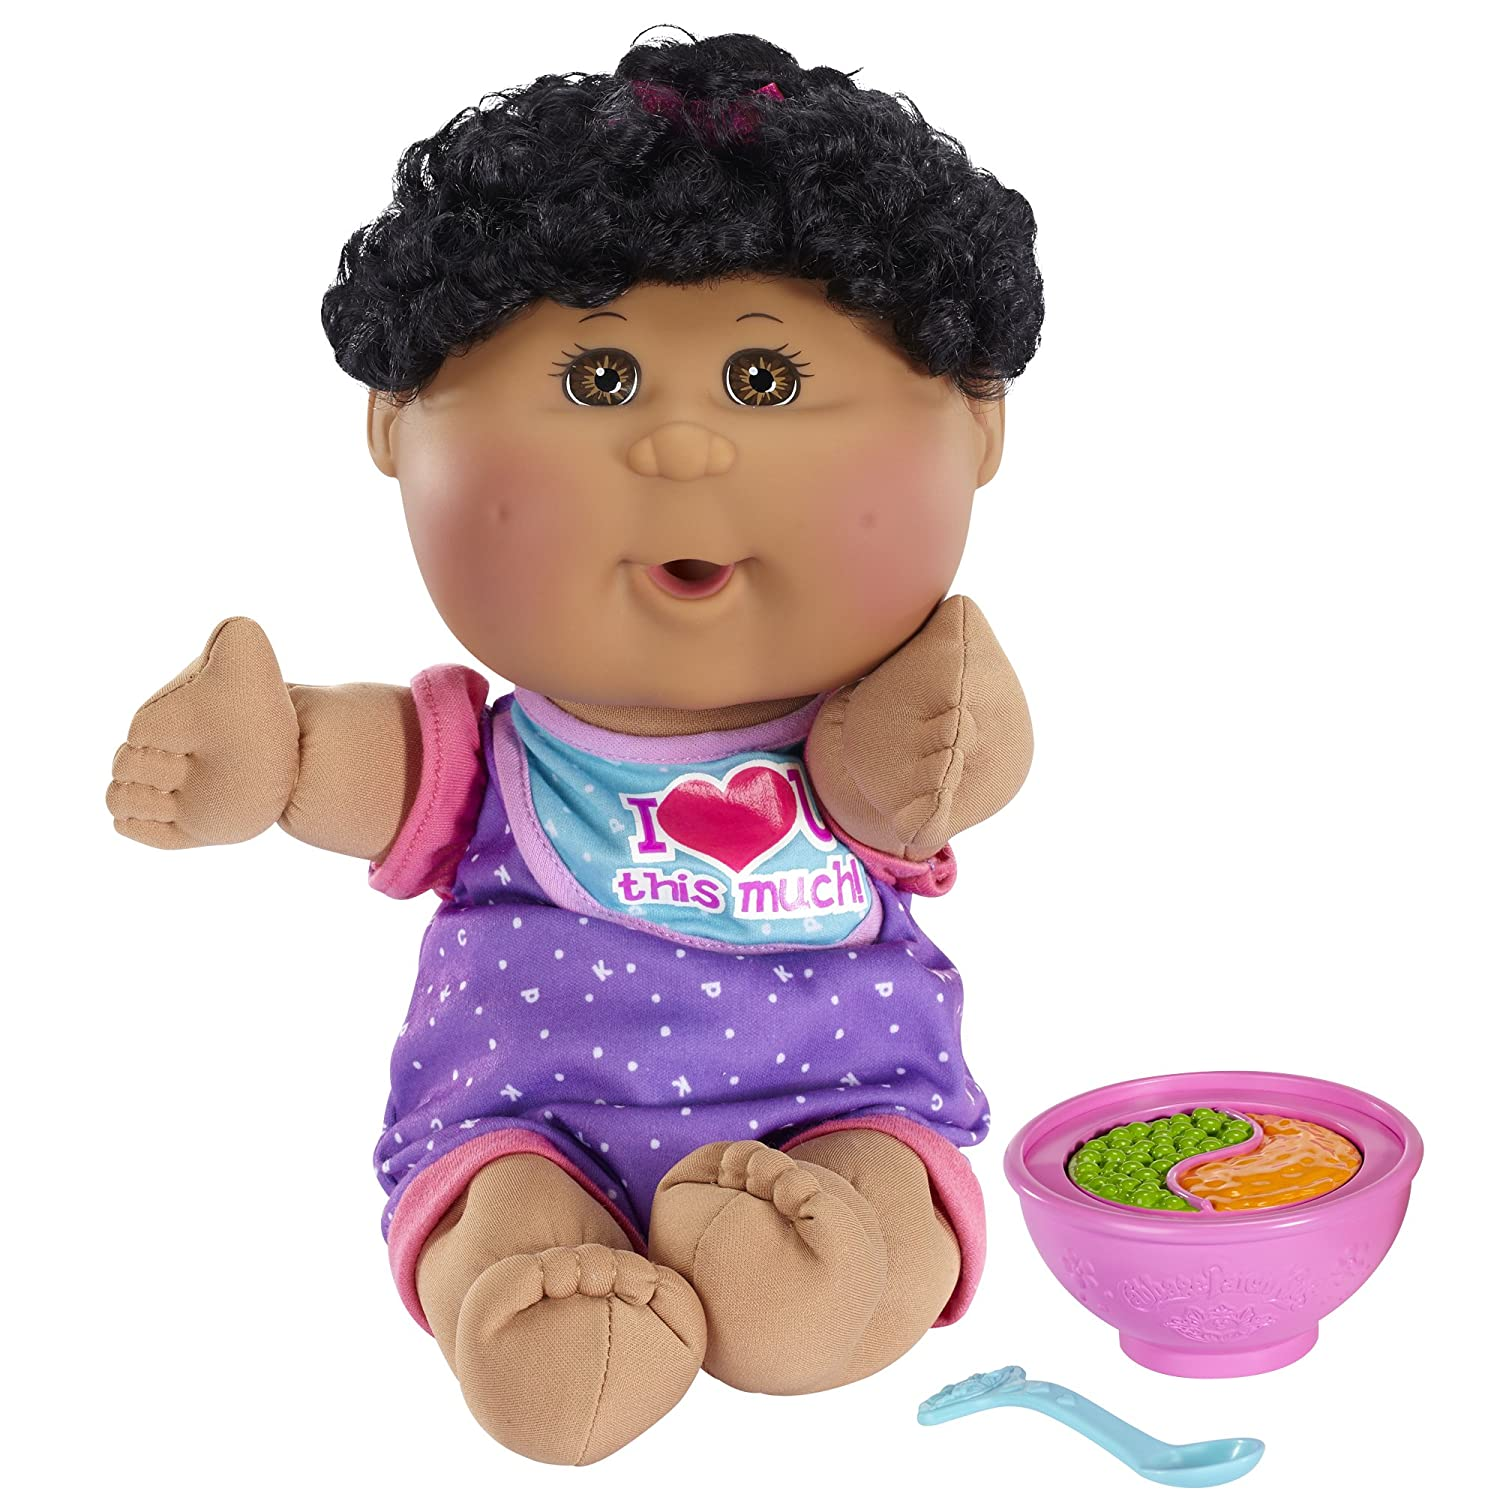 Buy Cabbage Patch Kids African American Girl Fun to Feed Babies Doll Black  Hair Brown Eyes Online at Low Prices in India - Amazon.in